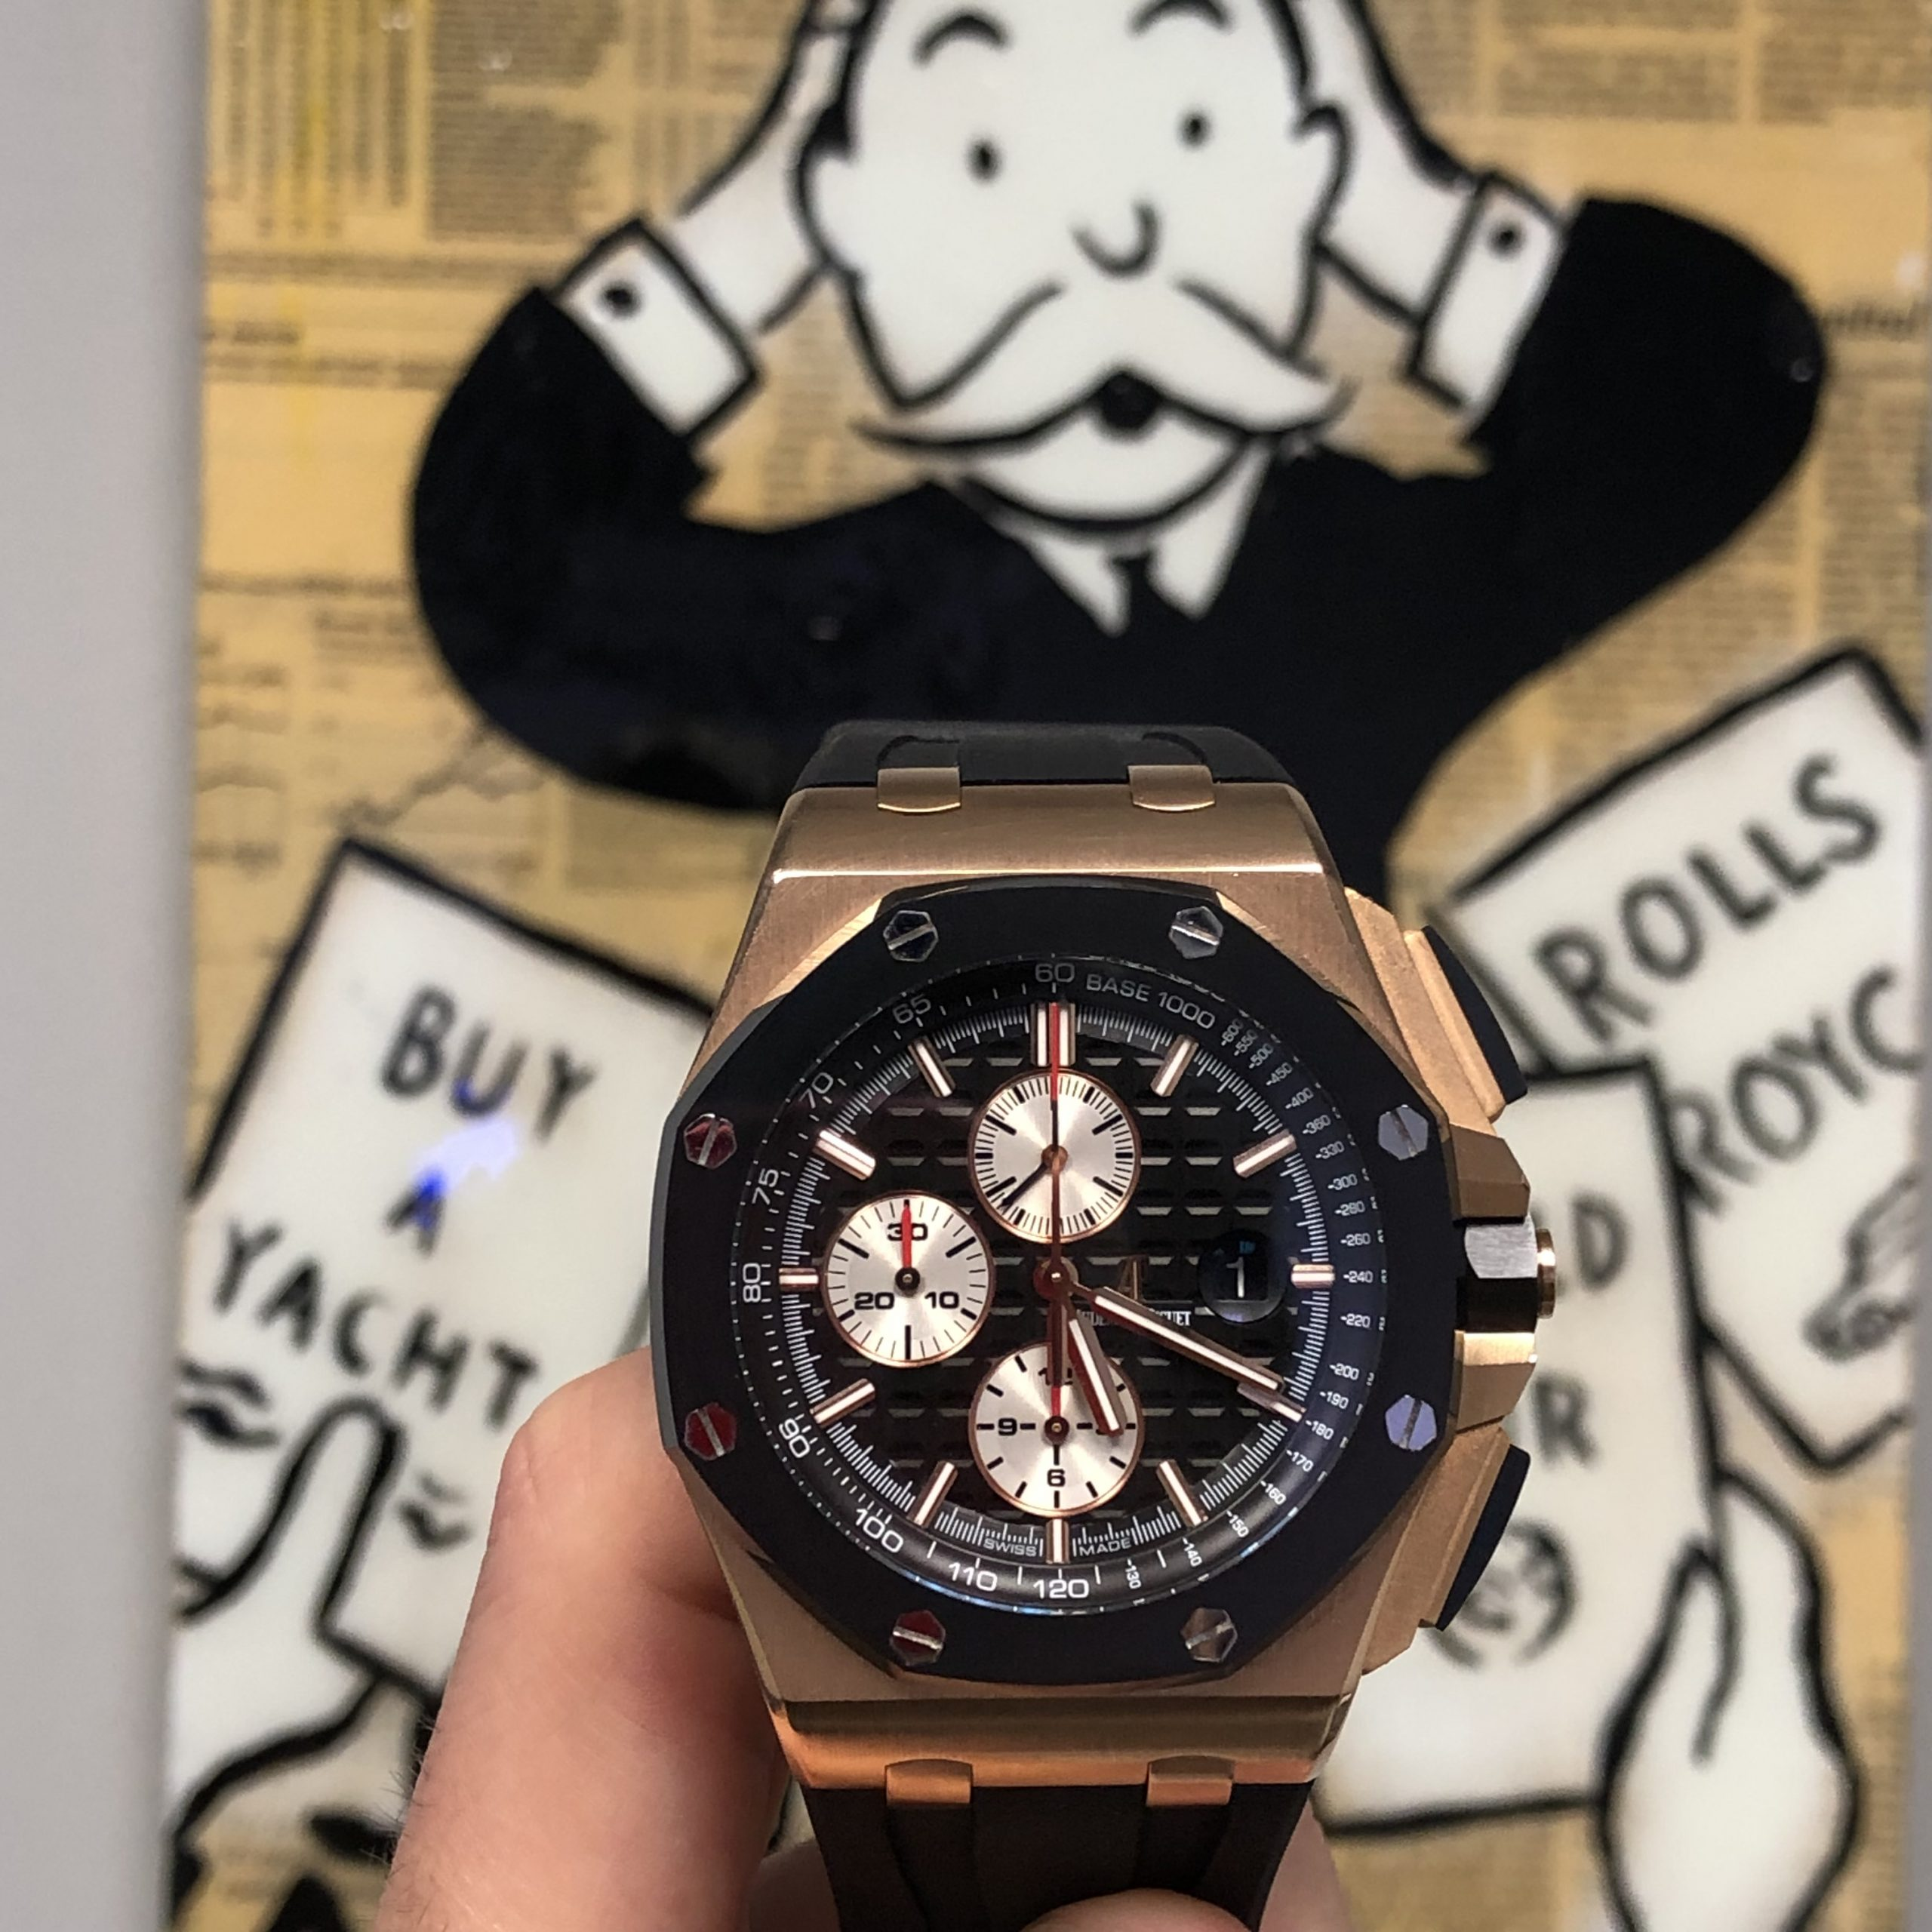 audemars piguet royal oak offshore rose gold rubber clad watch with Monopoly man in the background